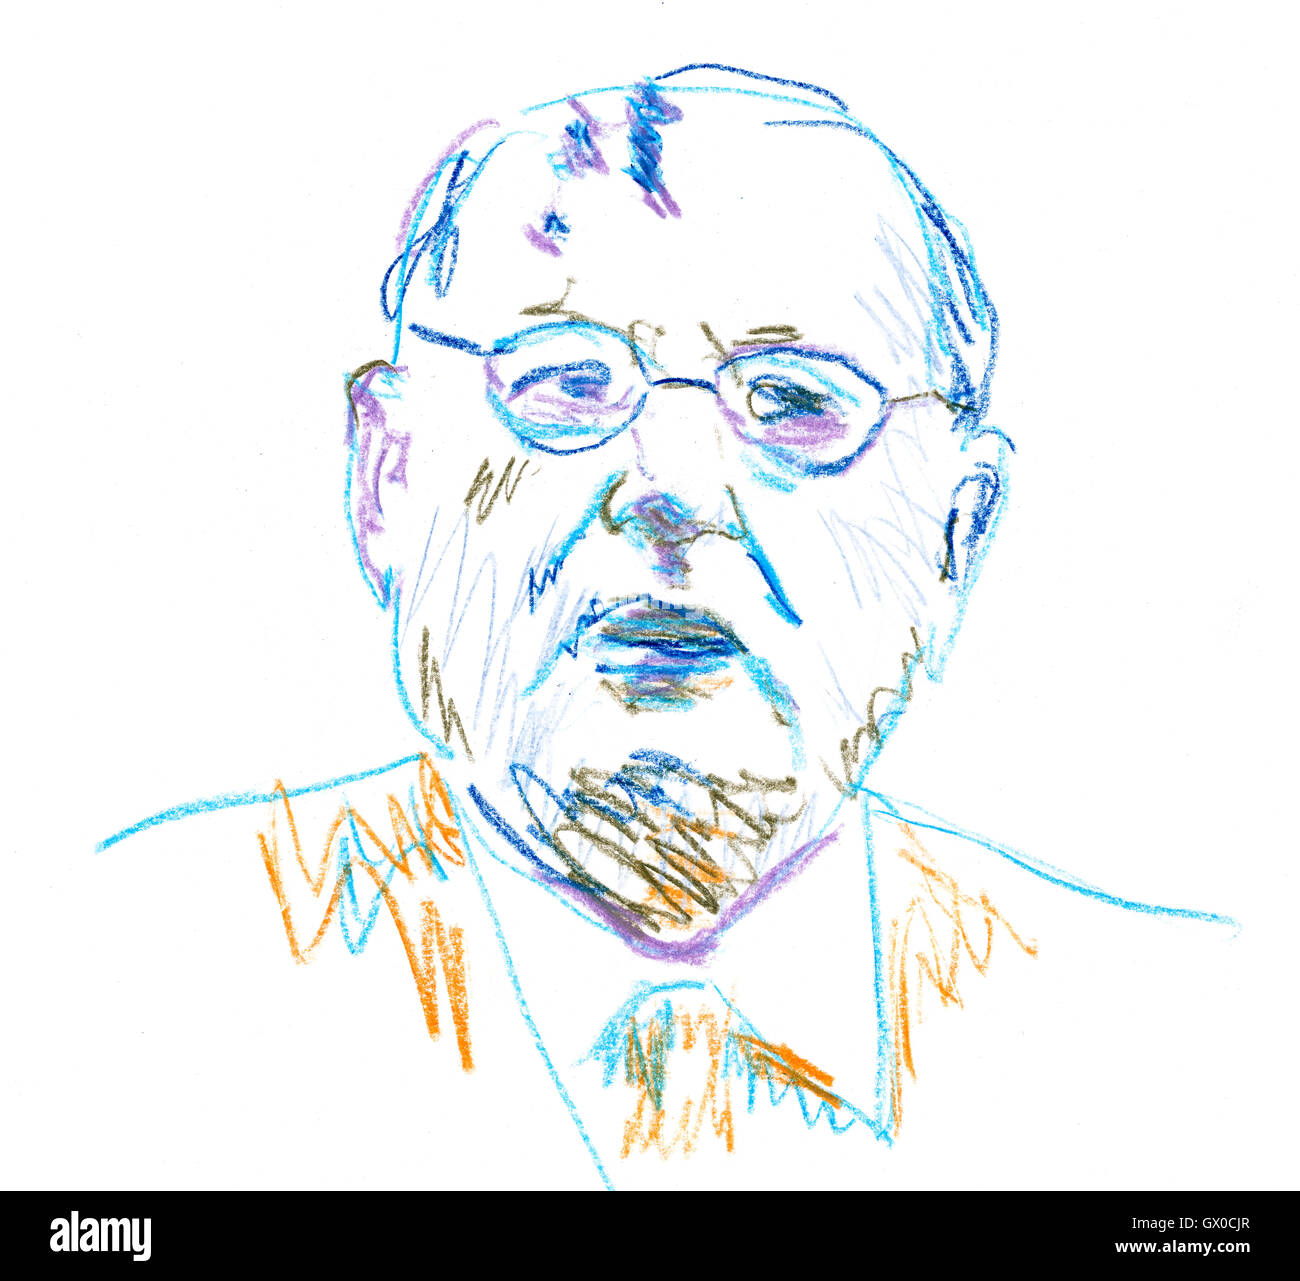 Mikhail Gorbachev in Color Pencil Drawing - Stock Image